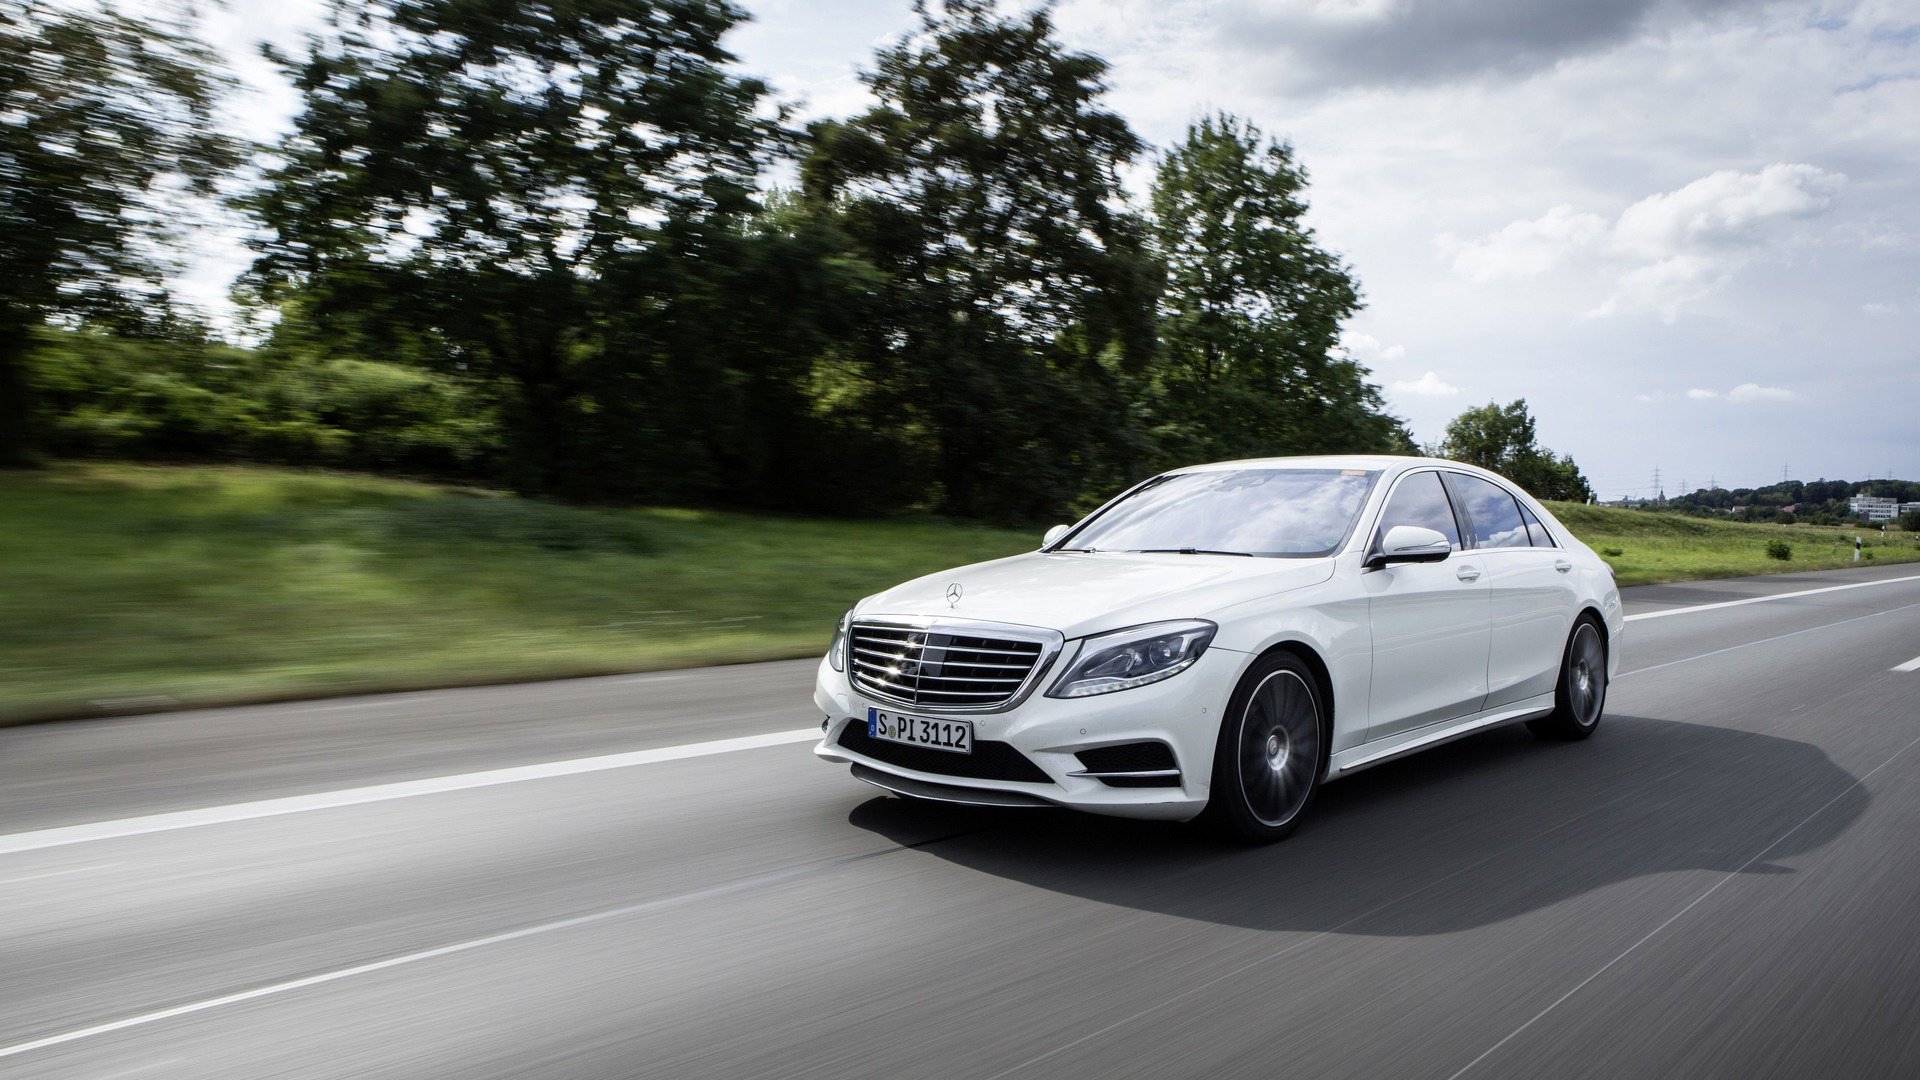 2017 mercedes s class gets new biturbo v8 and inline six for Mercedes benz s500 2017